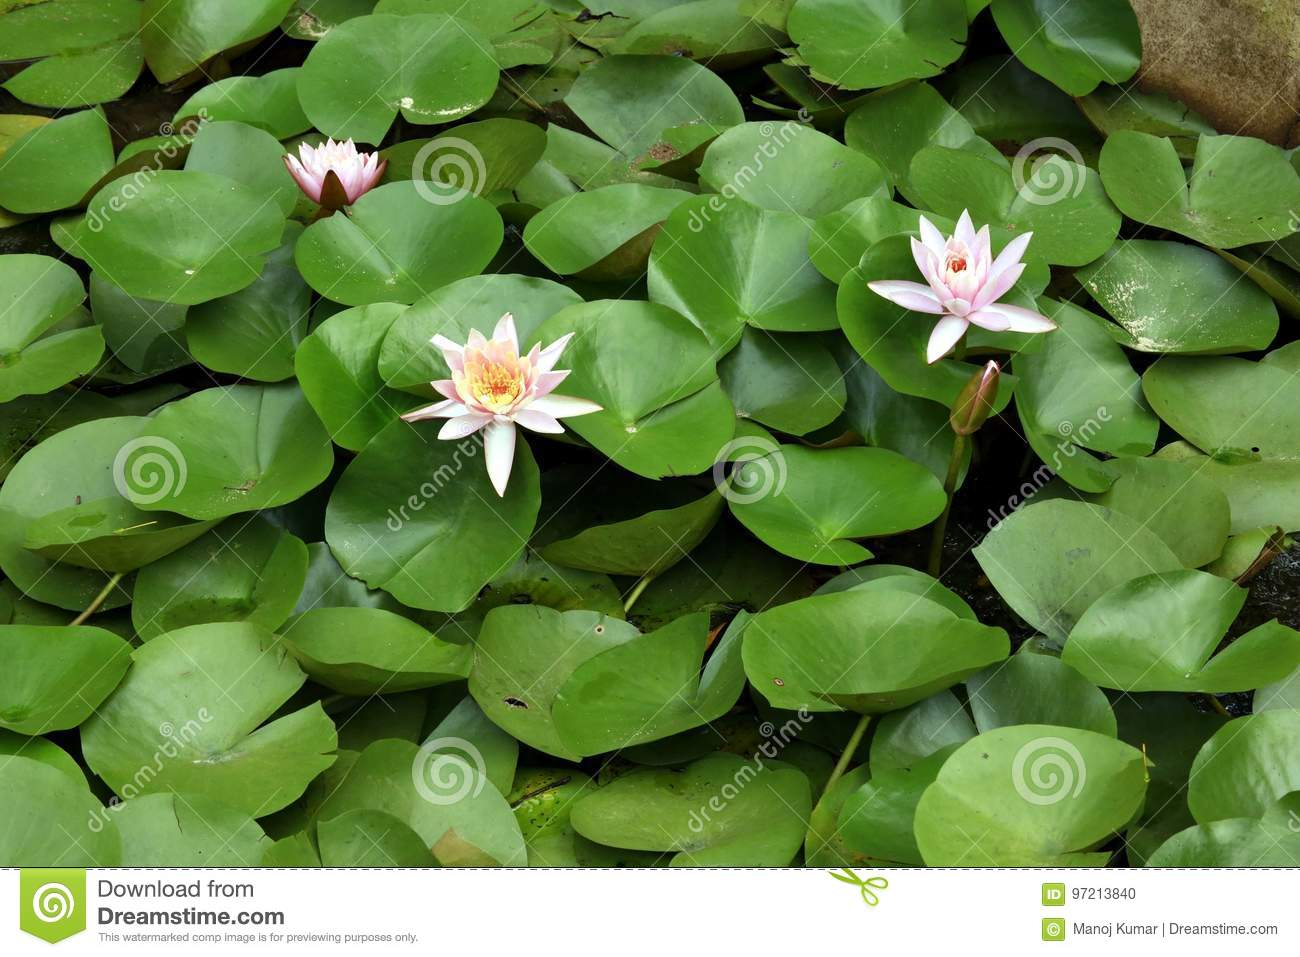 Lotus pink stock photo  Image of agriculture, lily, india - 97213840